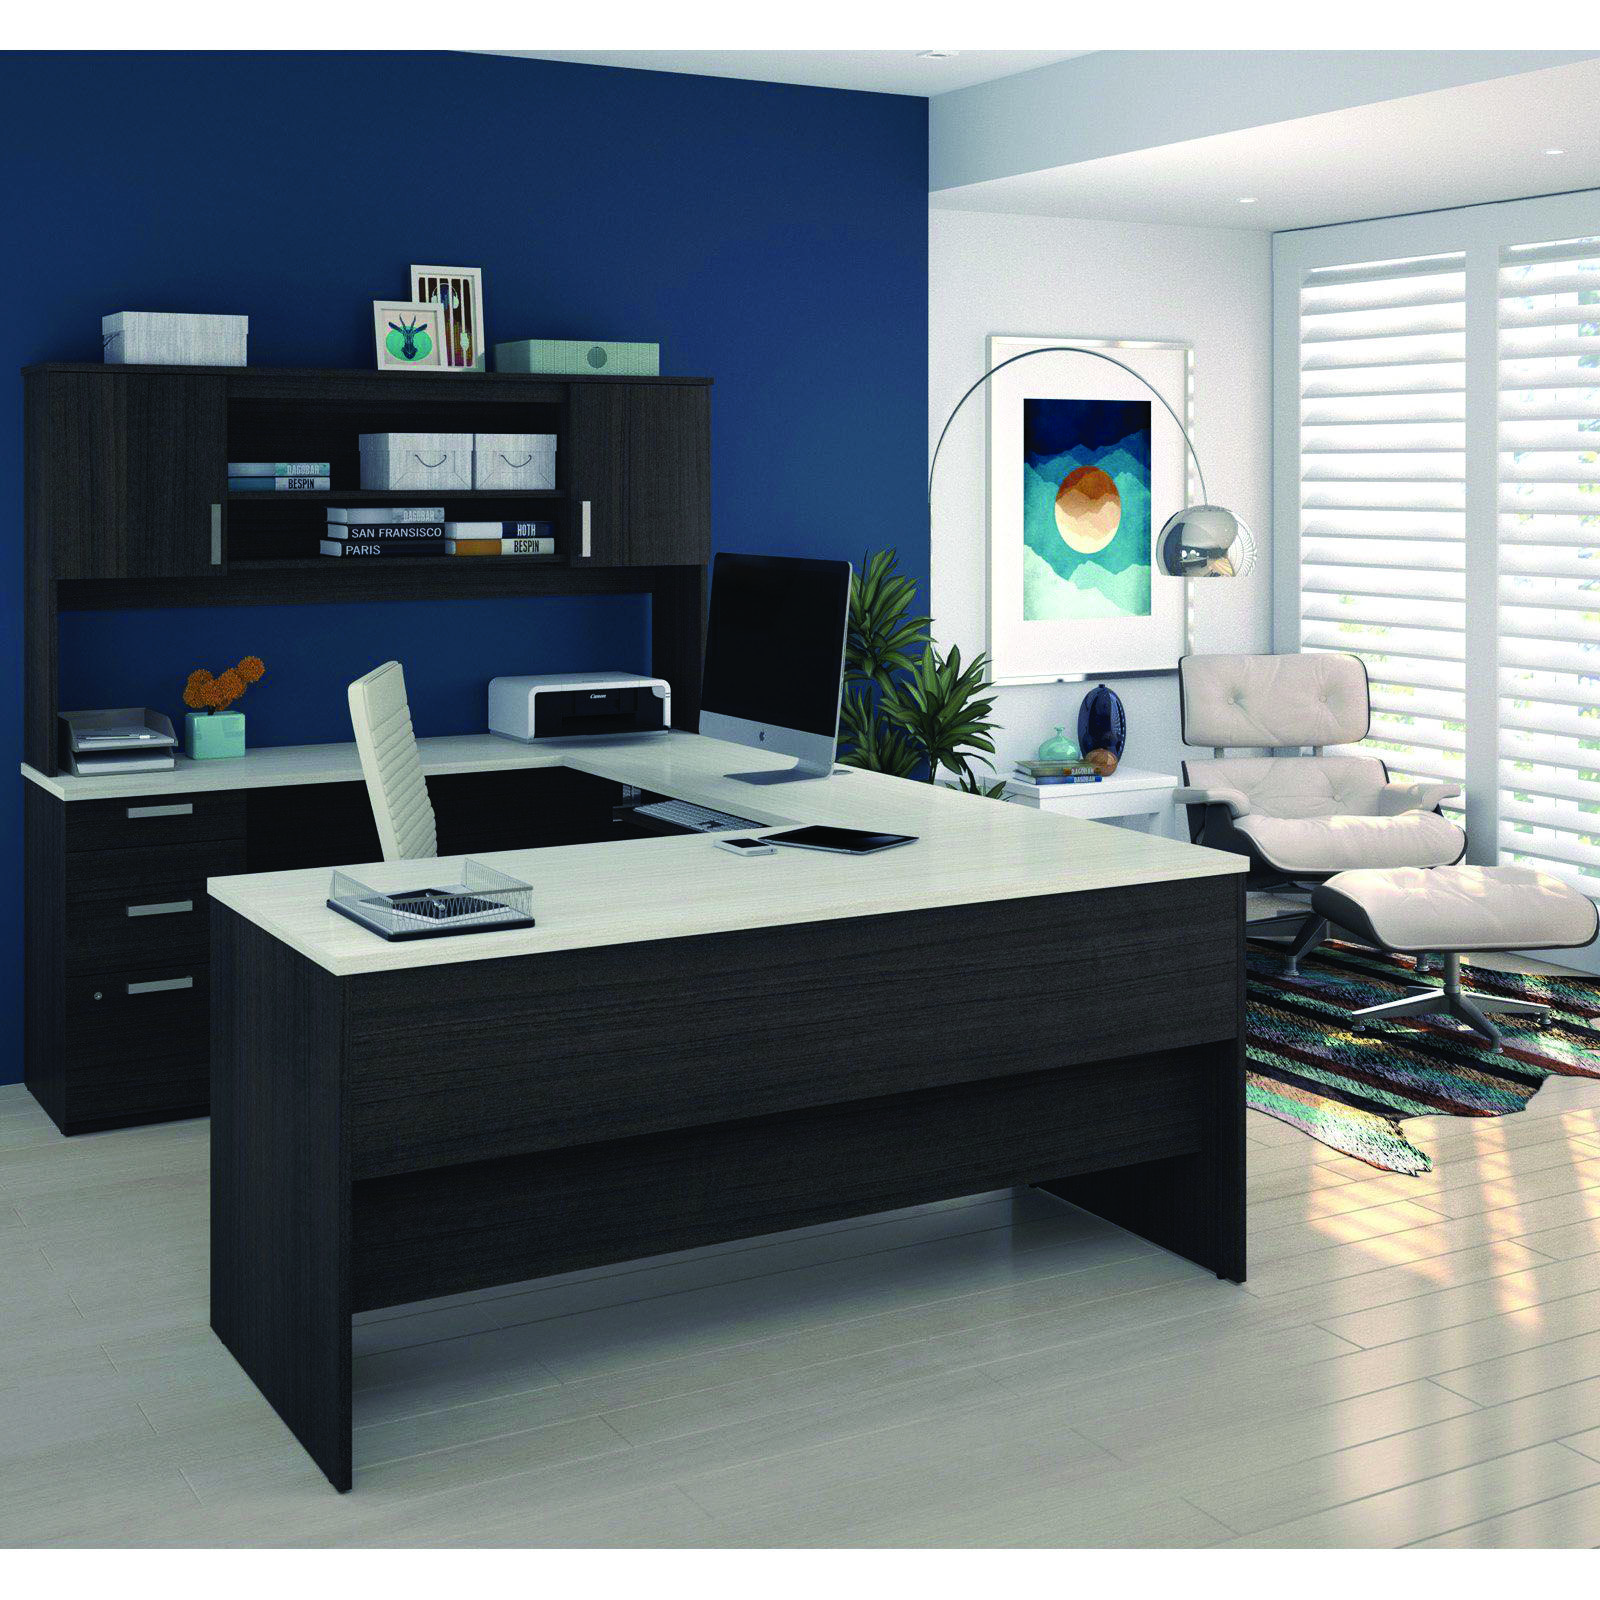 Small Office 10 Large Concept Ideas U Shaped Office Desk Home Office Furniture Home Office Design